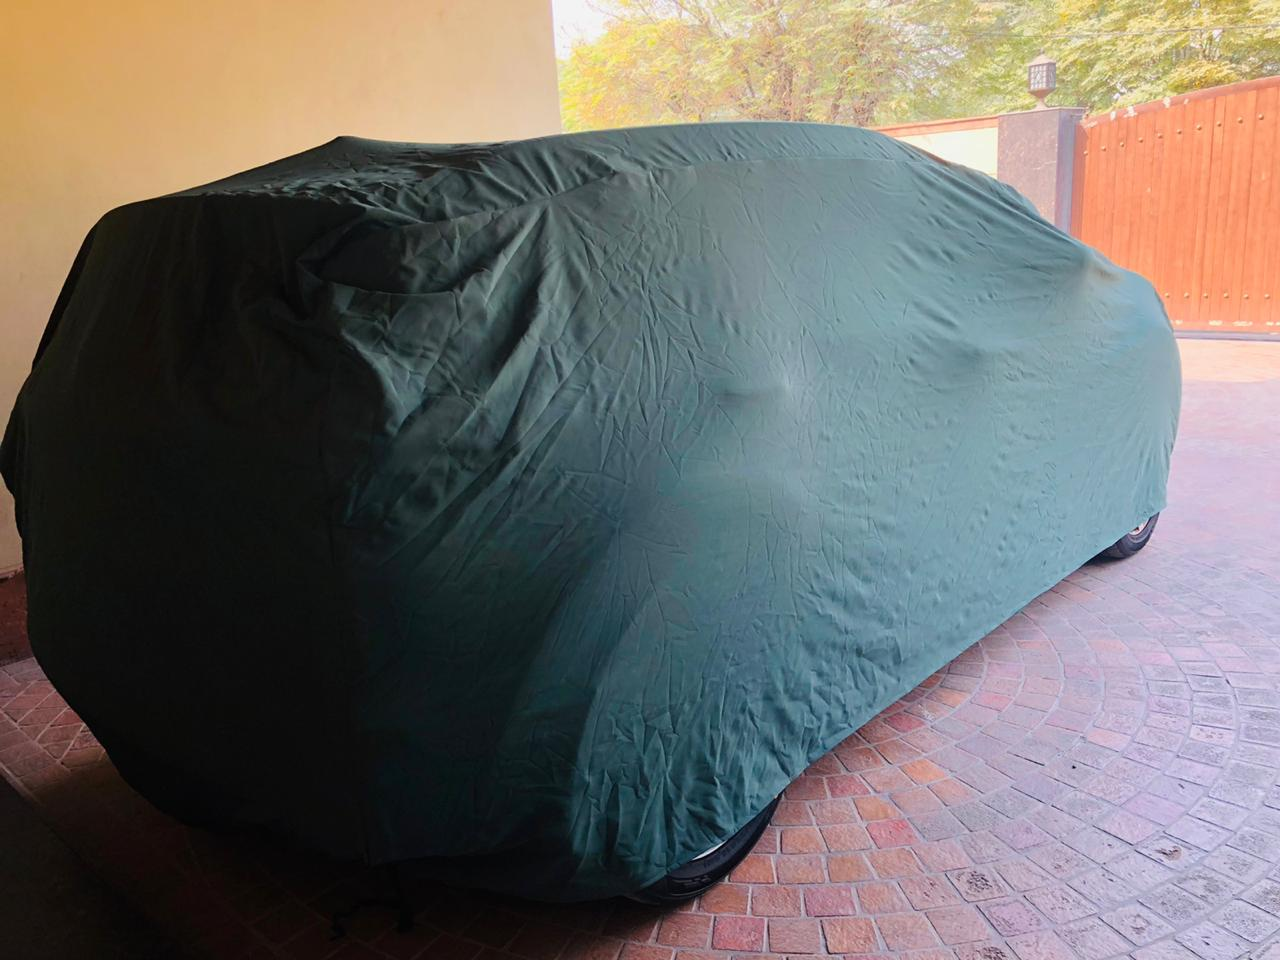 Toyota Ciaz Model 2017-2018 Parachute Car Top Cover